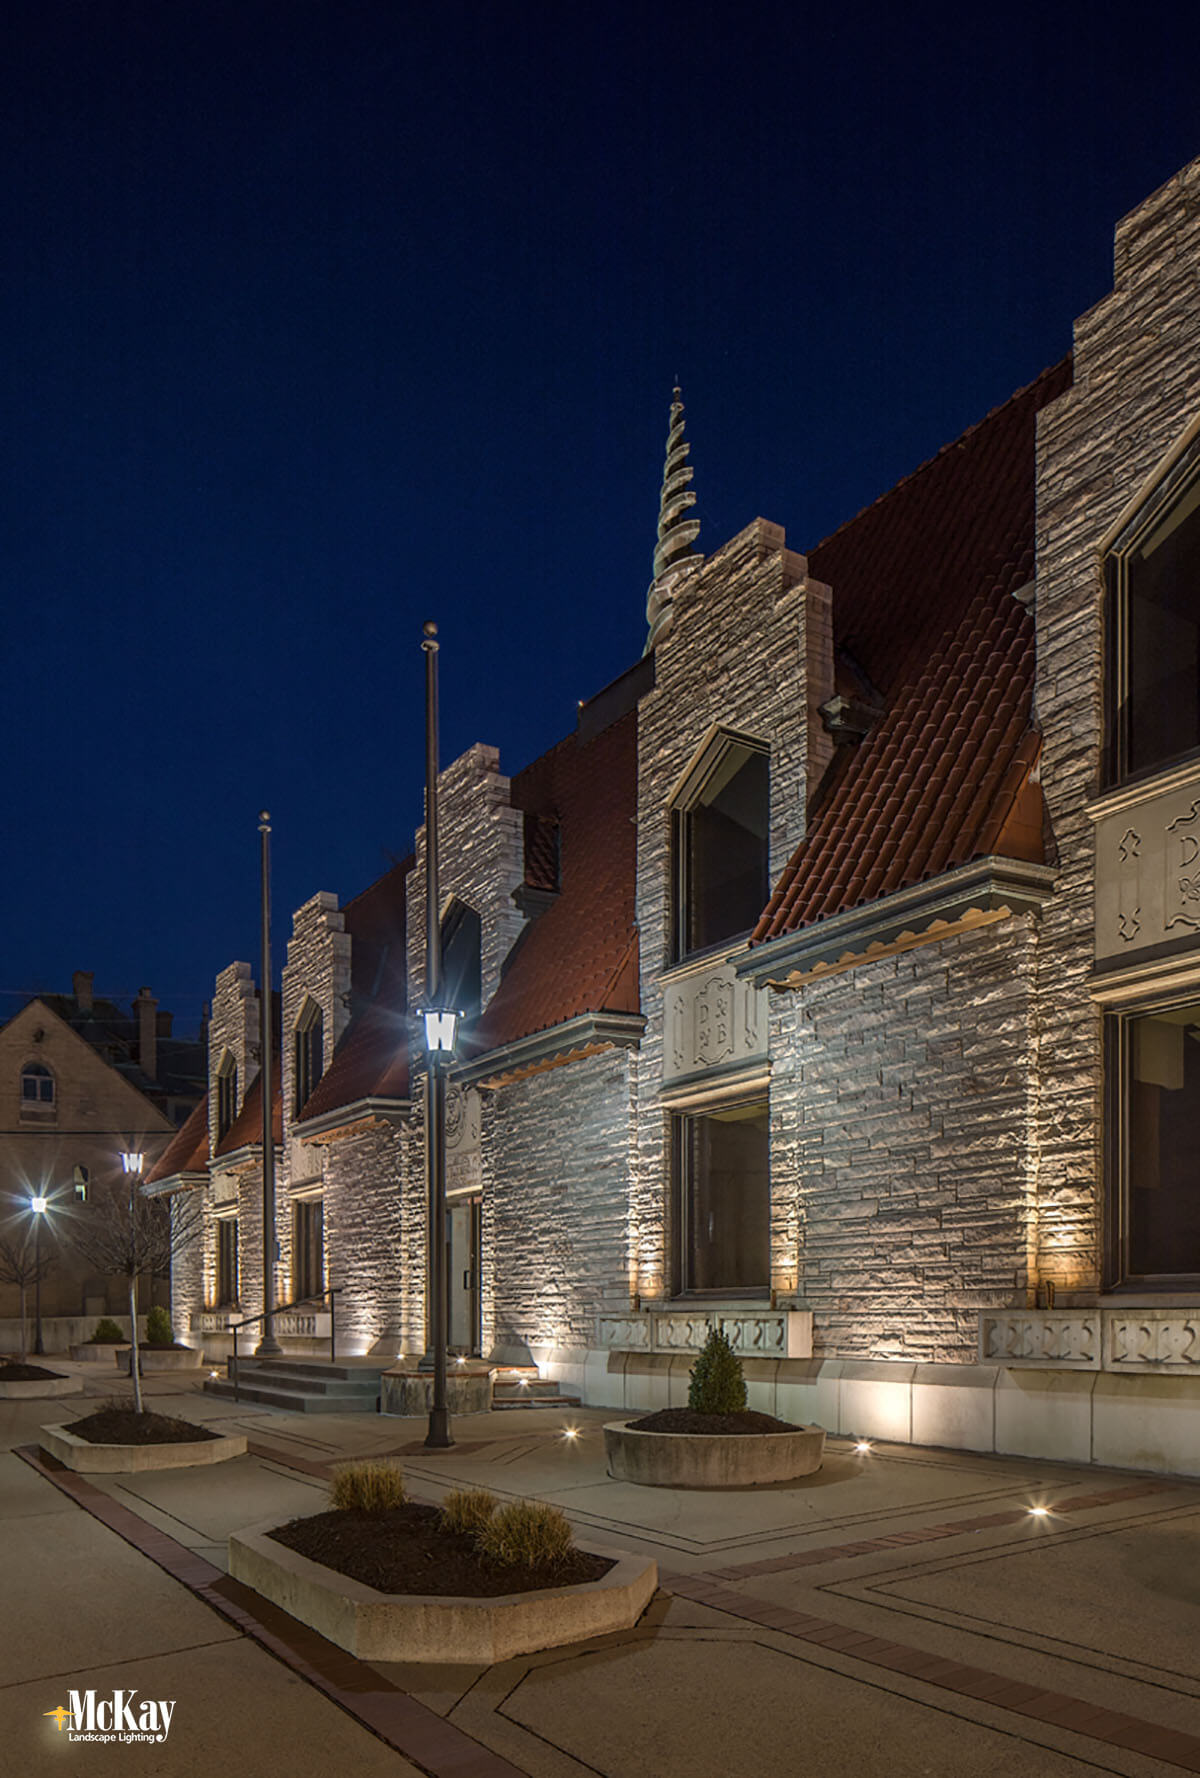 To evenly illuminate the facade and enhance the architecture of the two-story building, we used a combination of well lights and spotlights. Learn more about the commercial landscape lighting design... | McKay Lighting Omaha Nebraska